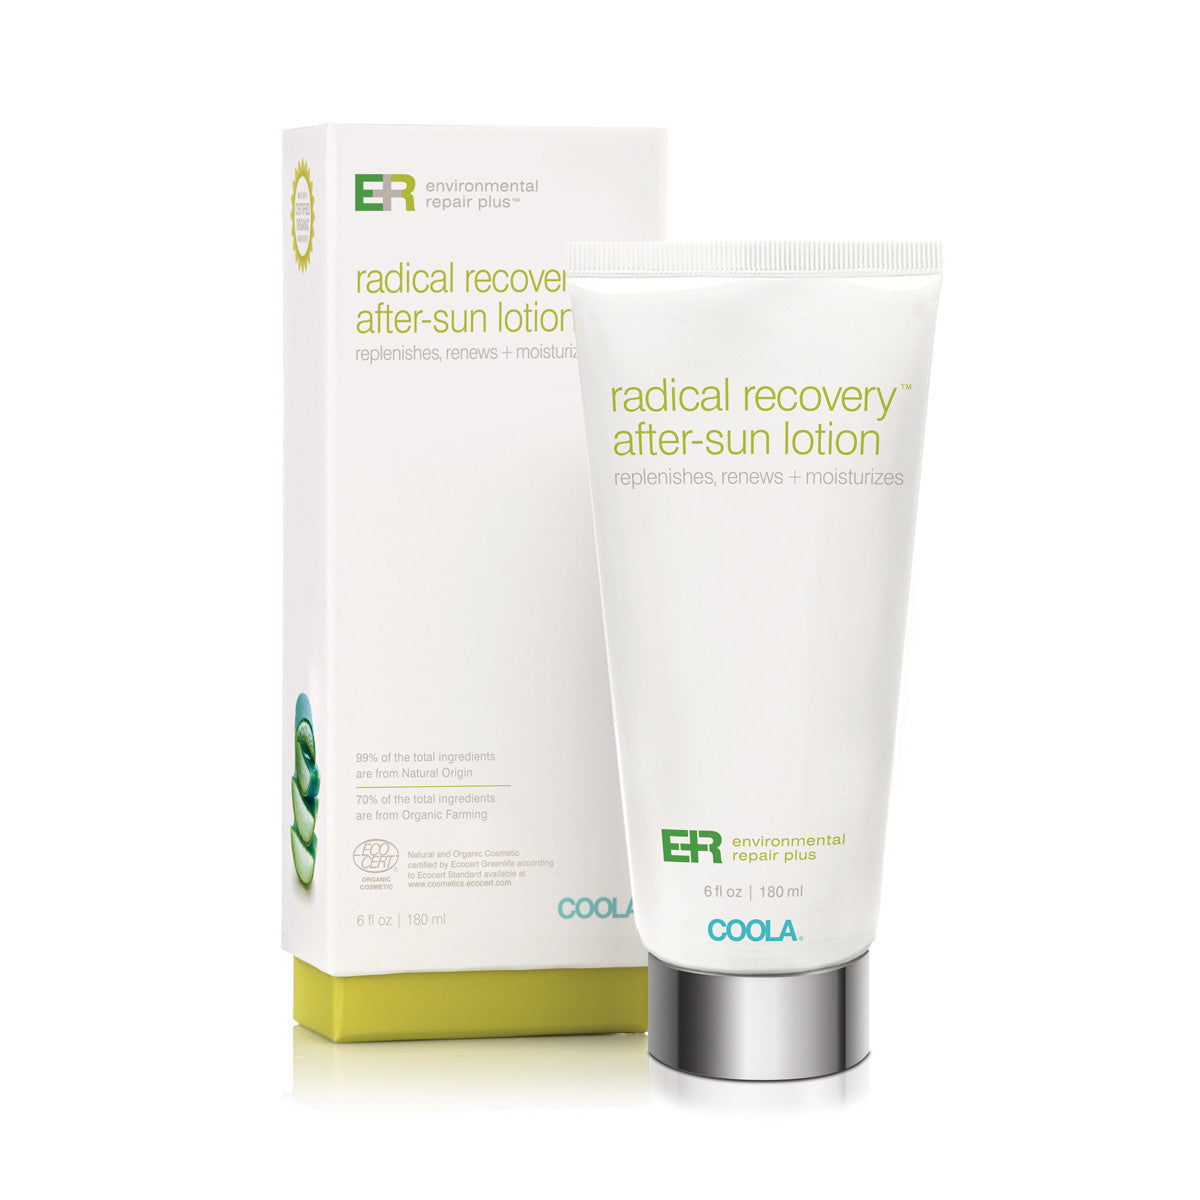 COOLA ENVIRONMENTAL REPAIR PLUS® RADICAL RECOVERY® AFTER-SUN LOTION | New London Pharmacy